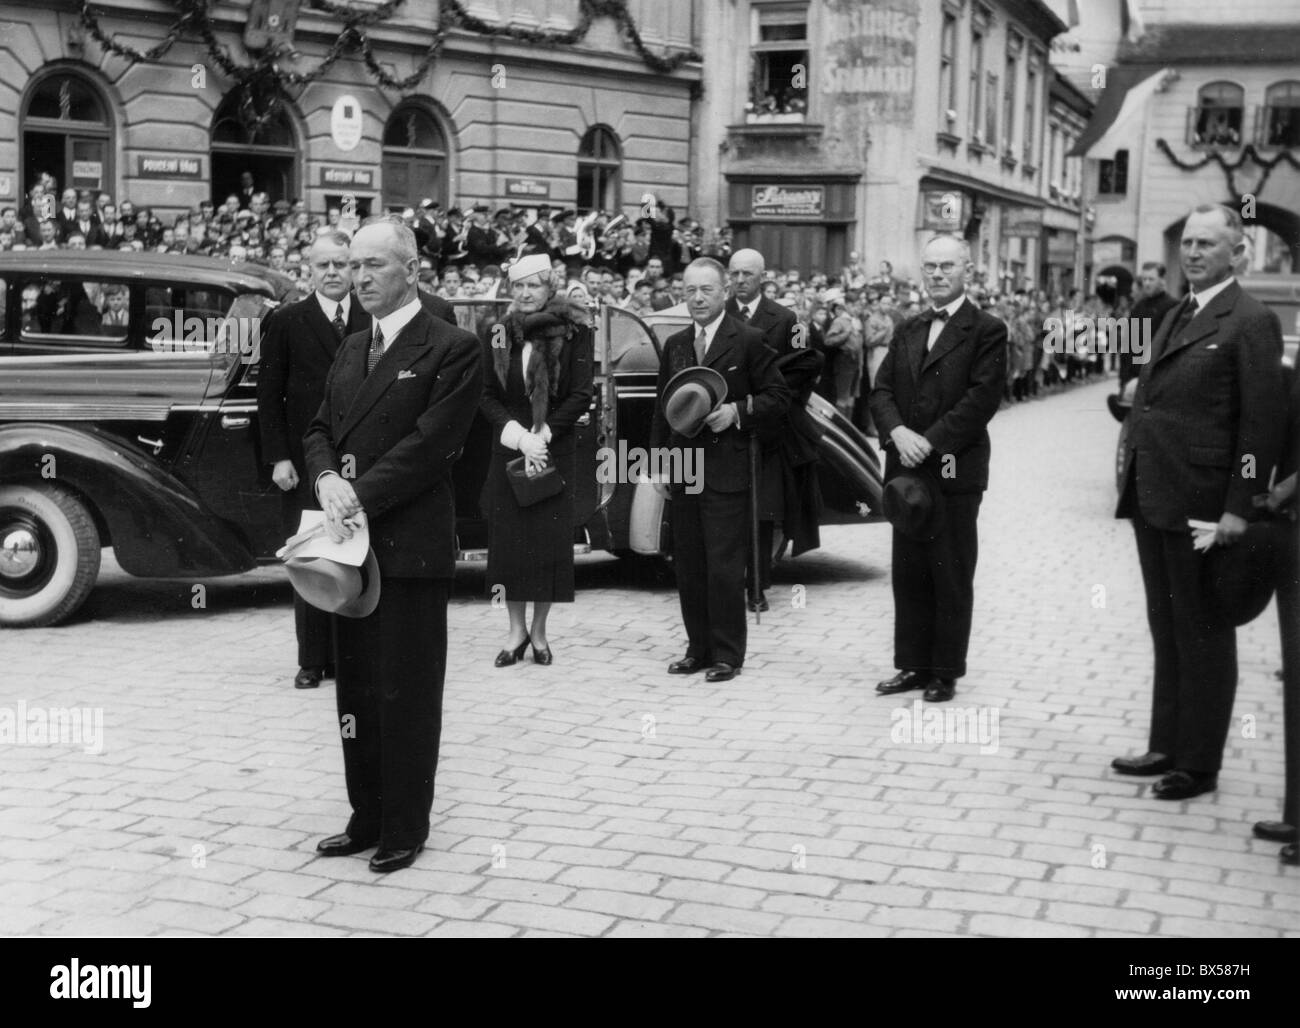 Trebon 1937, President Edvard Benes of Czechoslovakia accompanied by his wife Hana during the town visit. - Stock Image